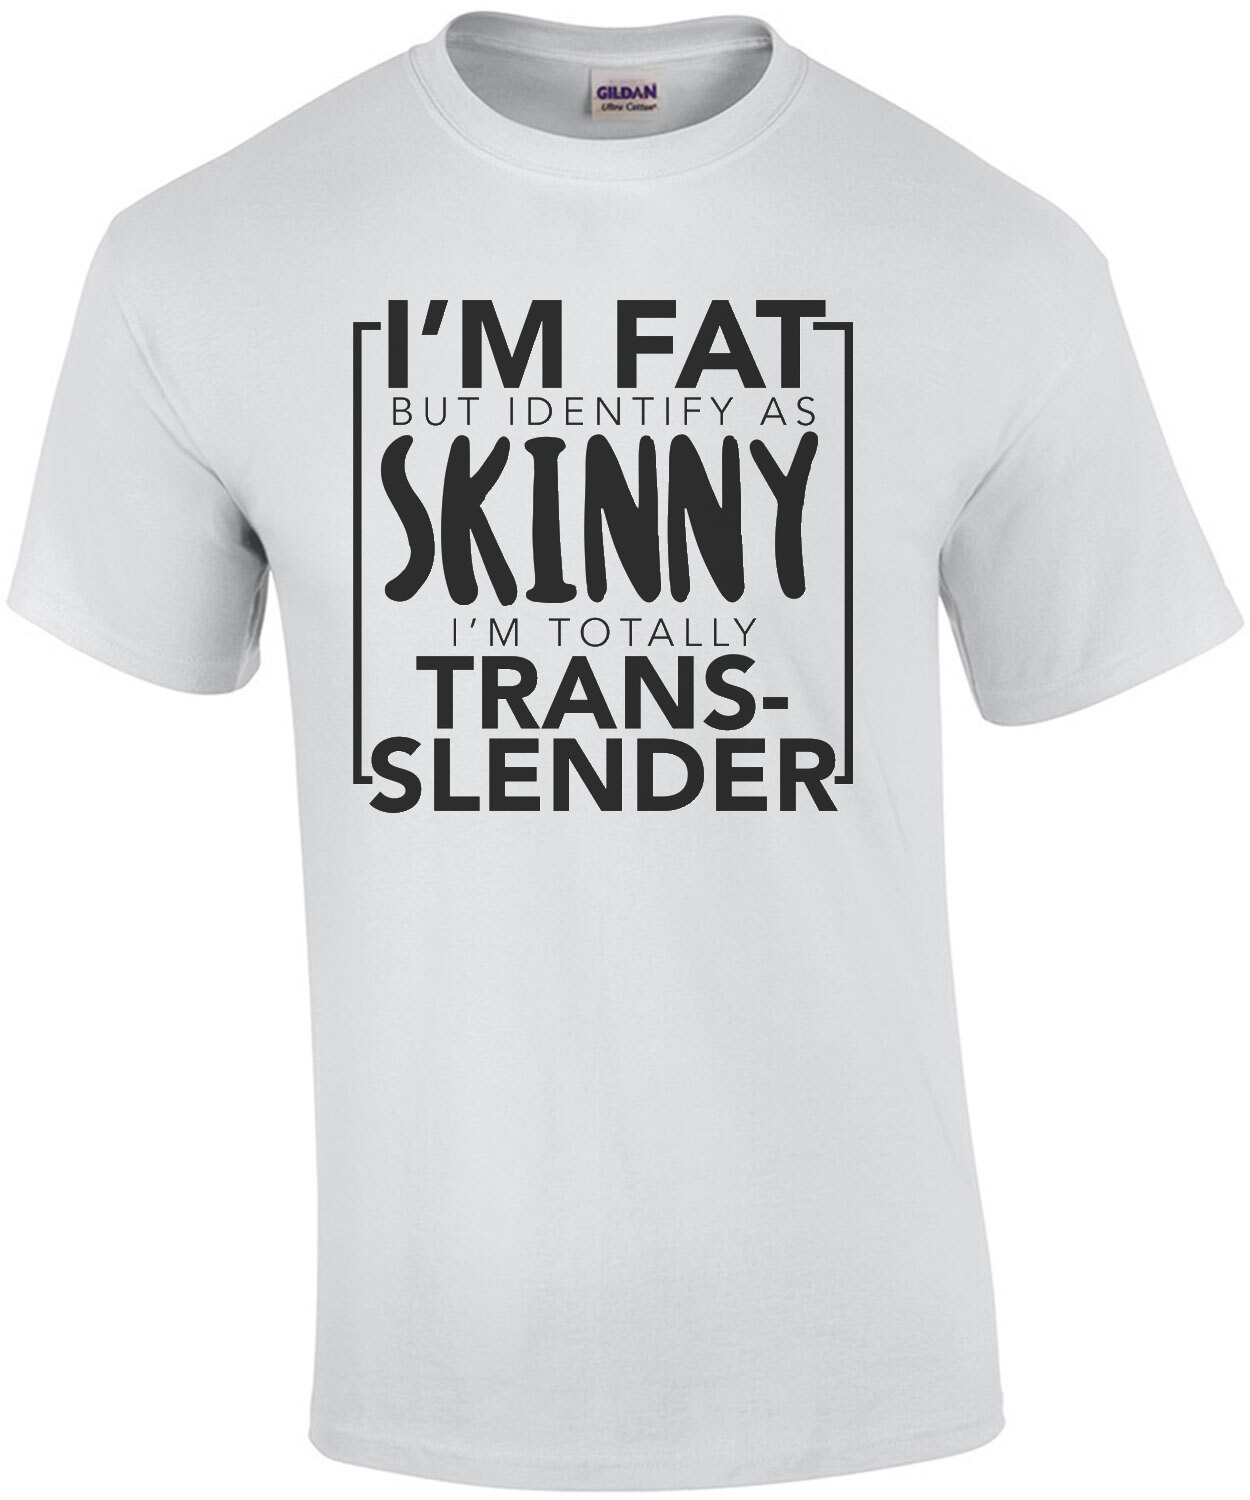 I'm fat but identify as skinny - I'm totally trans-slender funny t-shirt